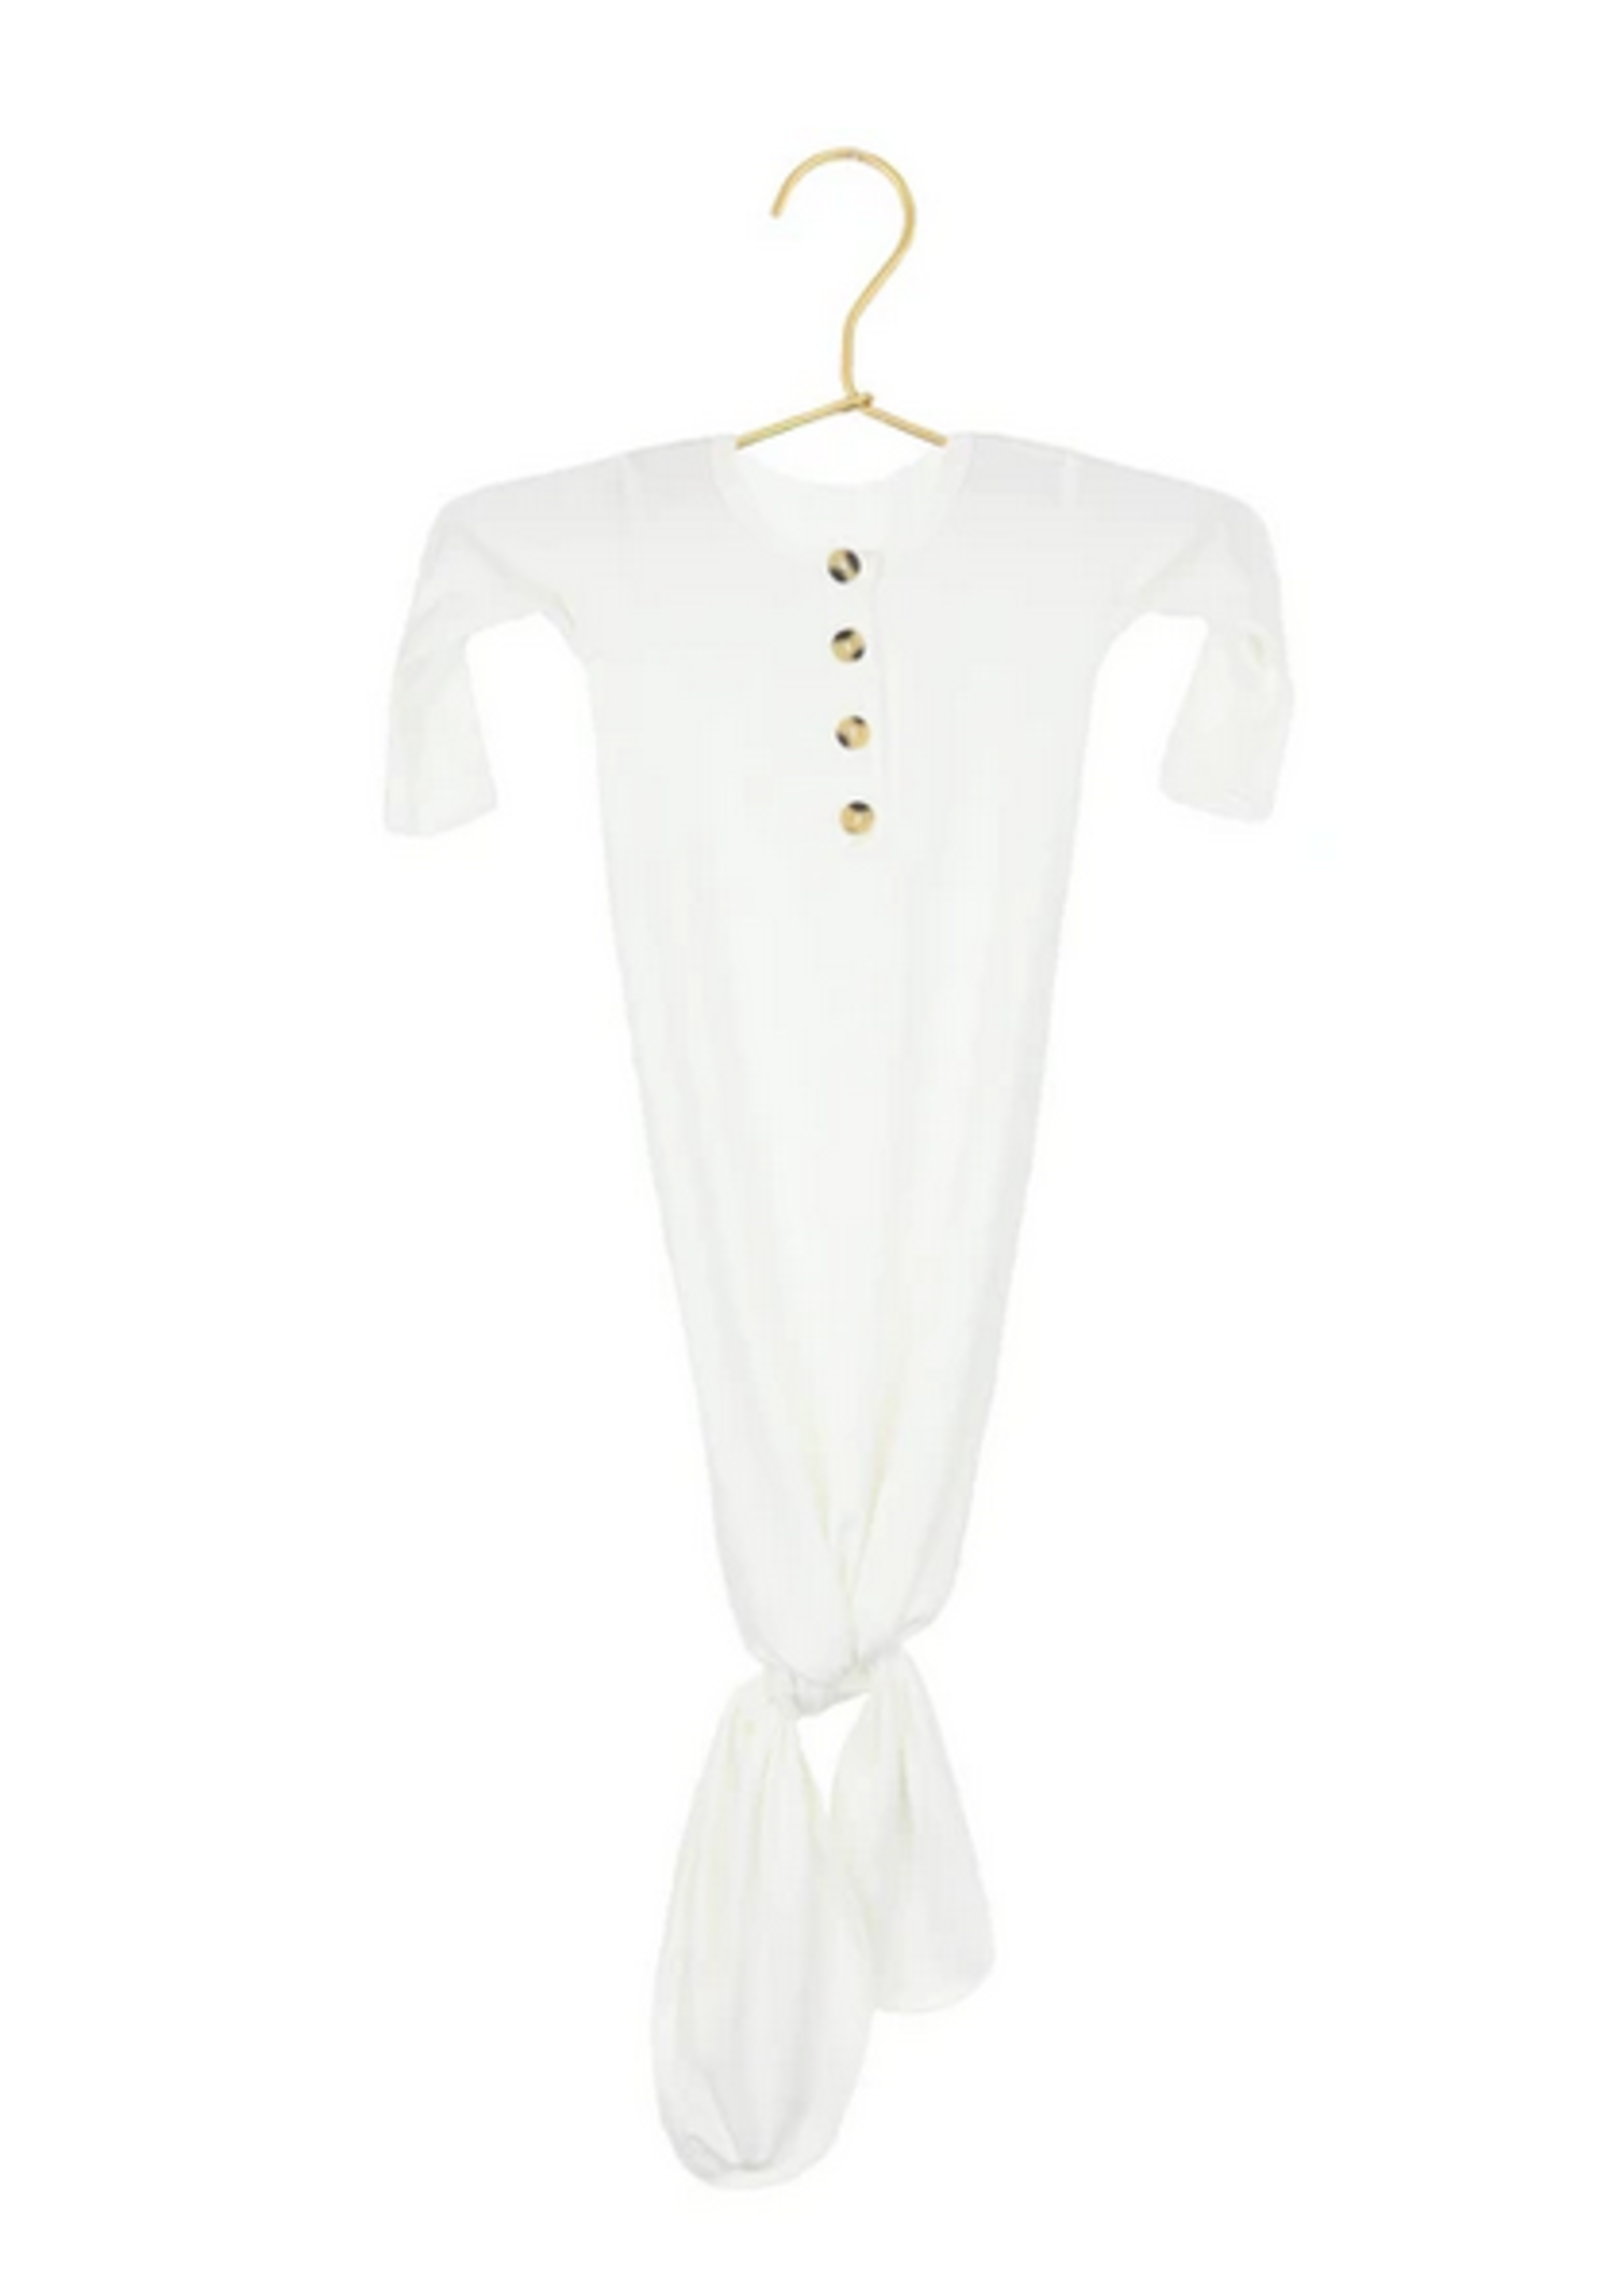 Elitaire Petite Finley White Knotted Gown Newborn - 3 Months